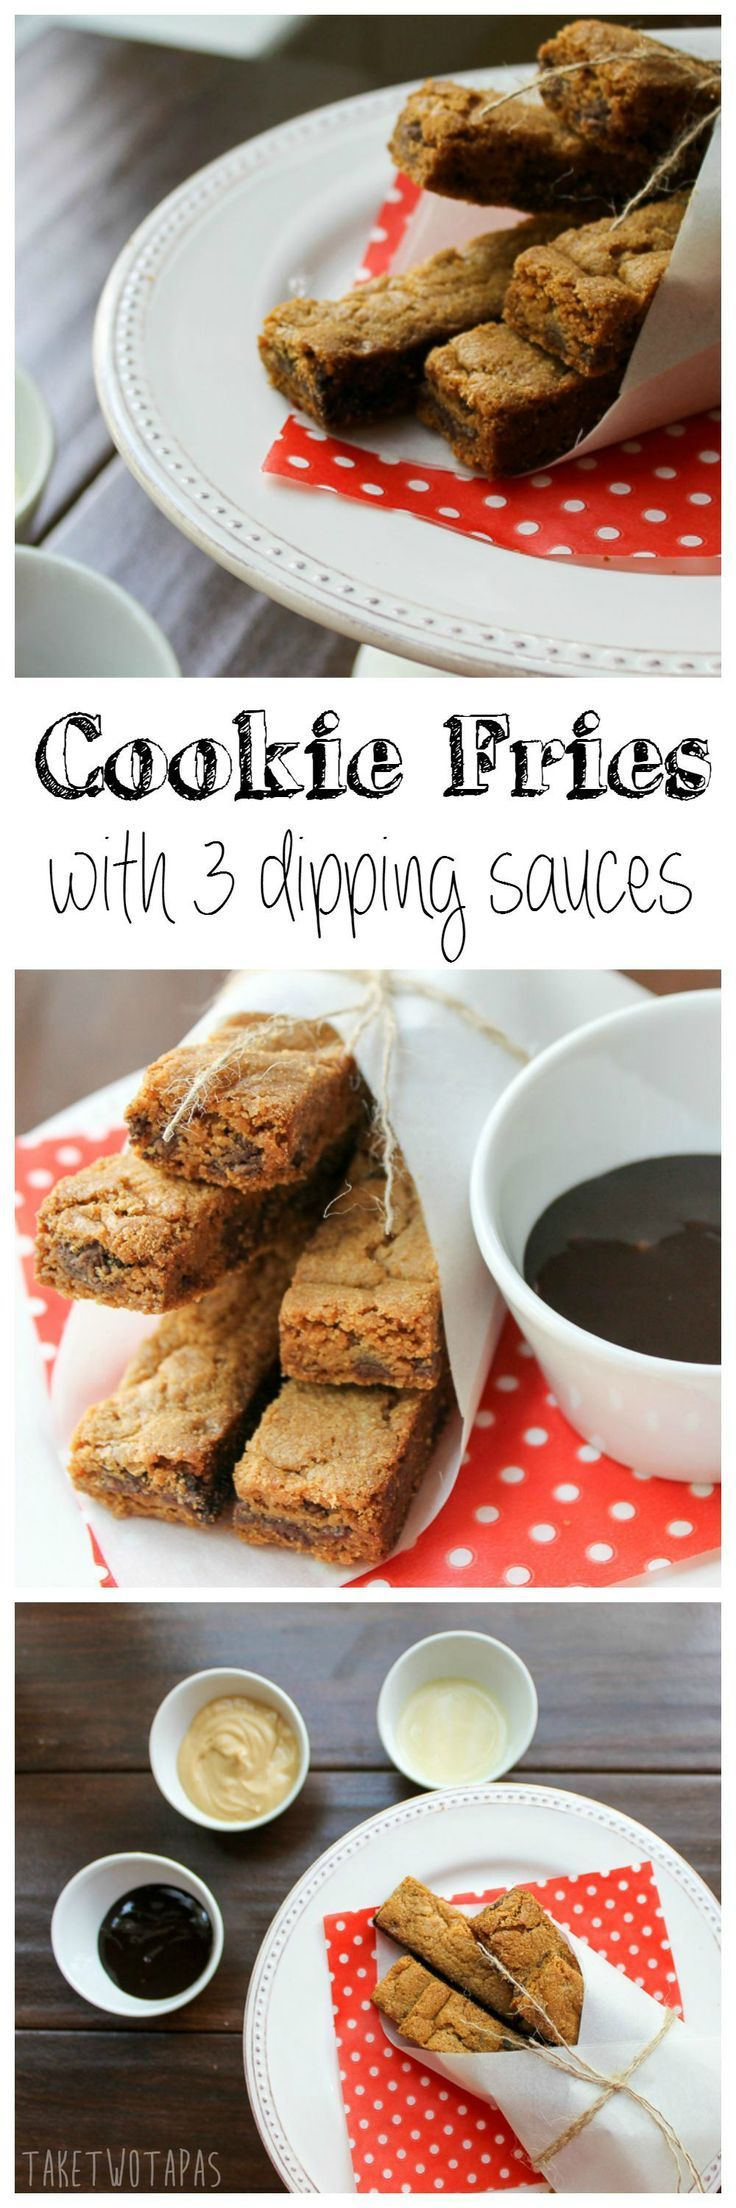 "Cookie Fries are a fun way to eat cookies!  The kid will love them and have fun dipping the ""fries"" into the dipping sauces! Cookie Fries 